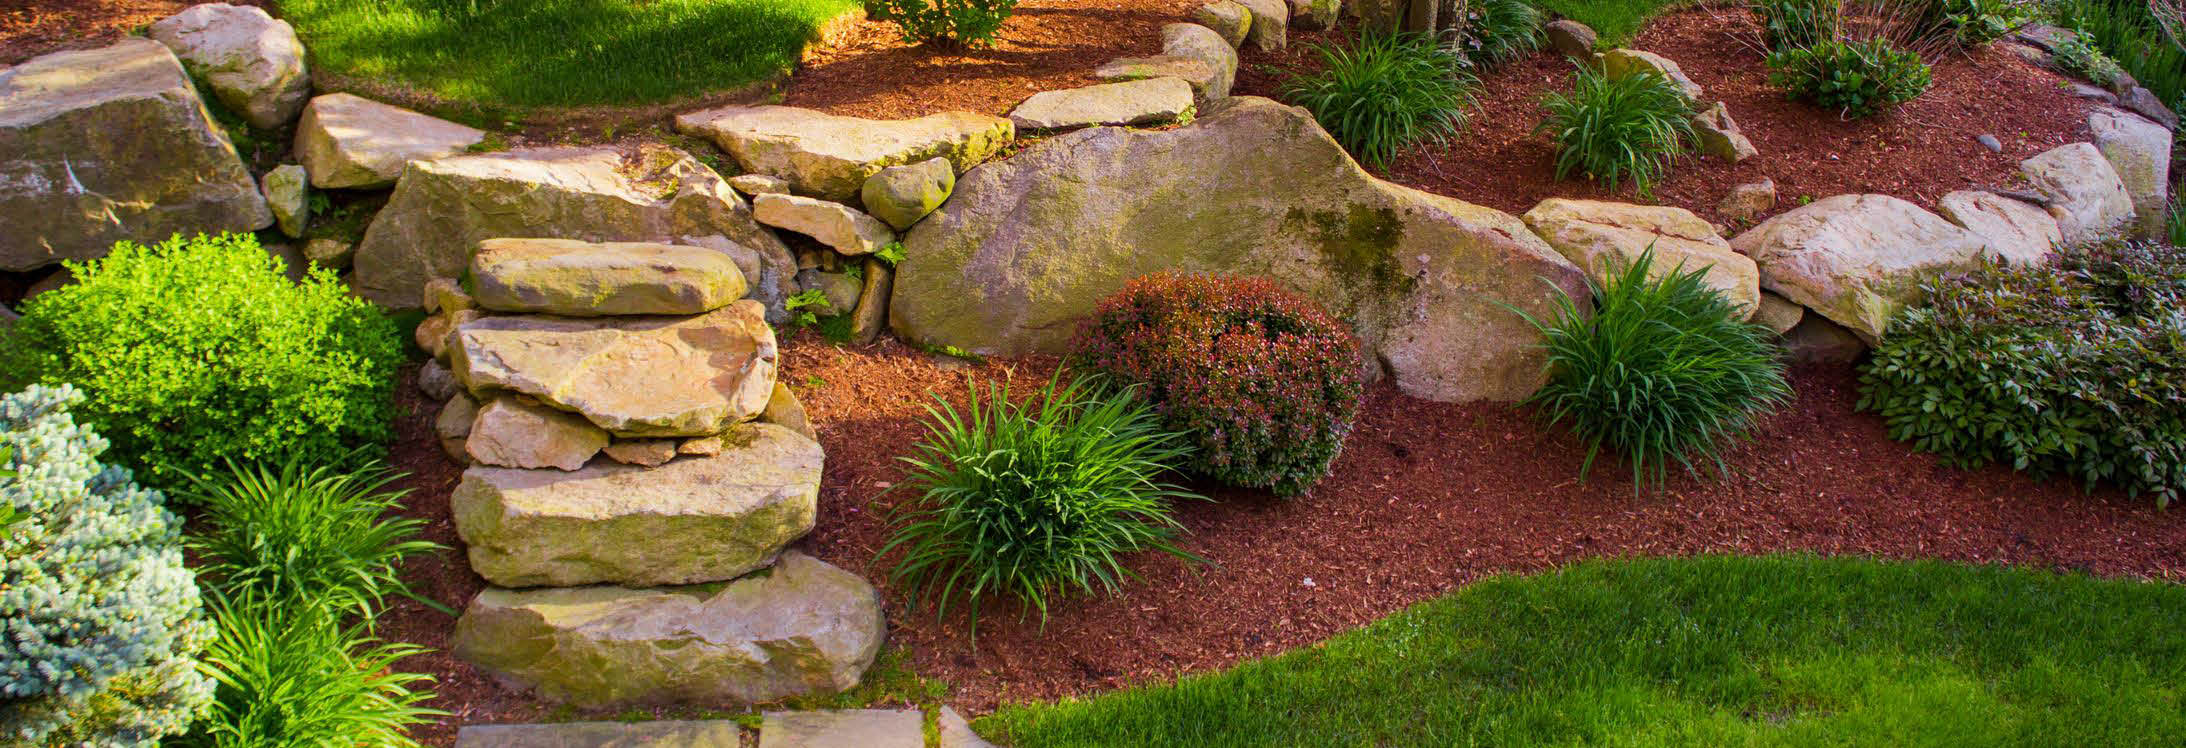 creech's garden center and landscaping sevices lebanon ohio